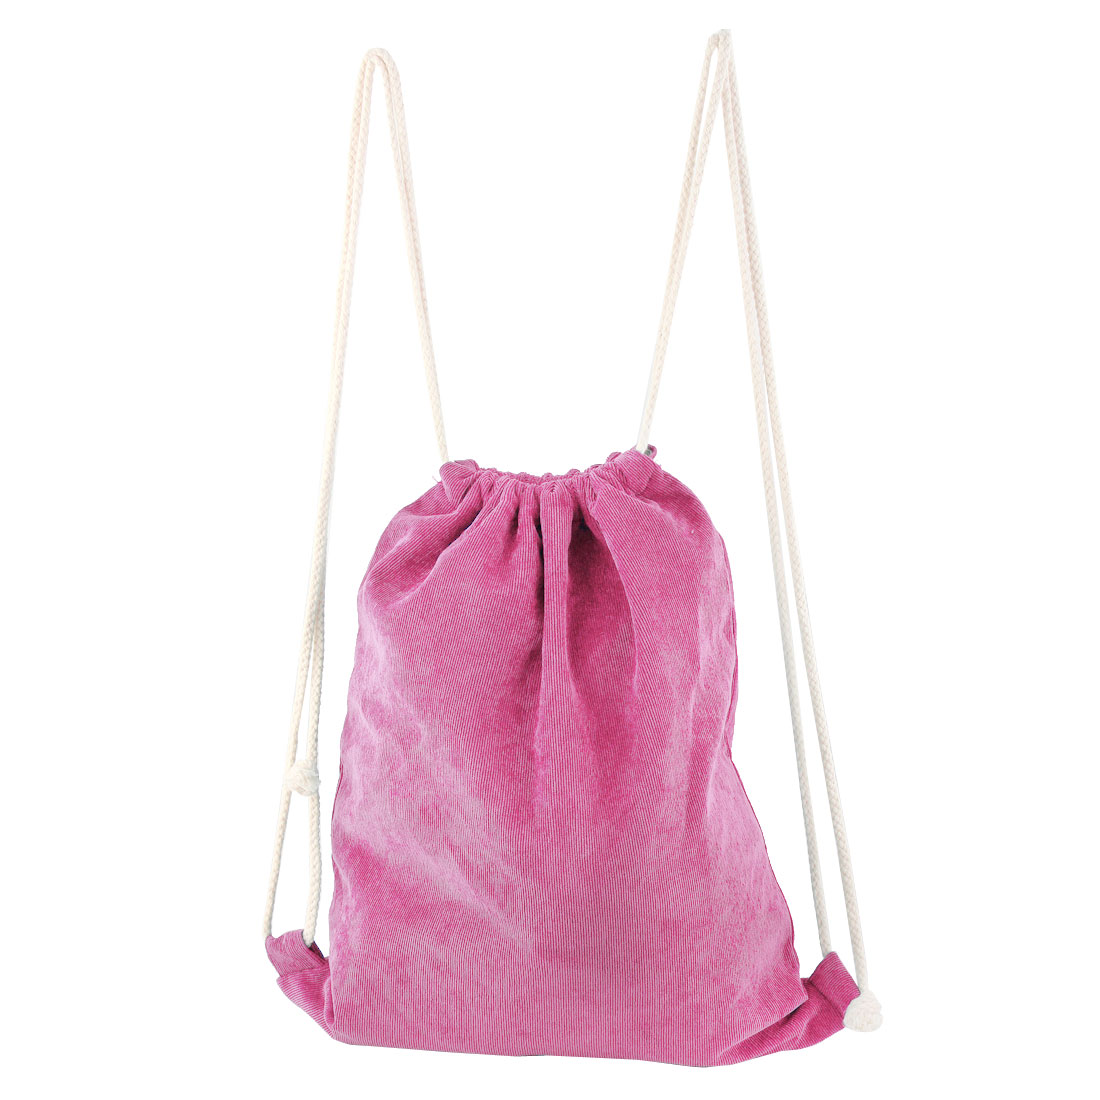 Picnic Travel Storage Pouch Tote Bag Draw Backpack Pink